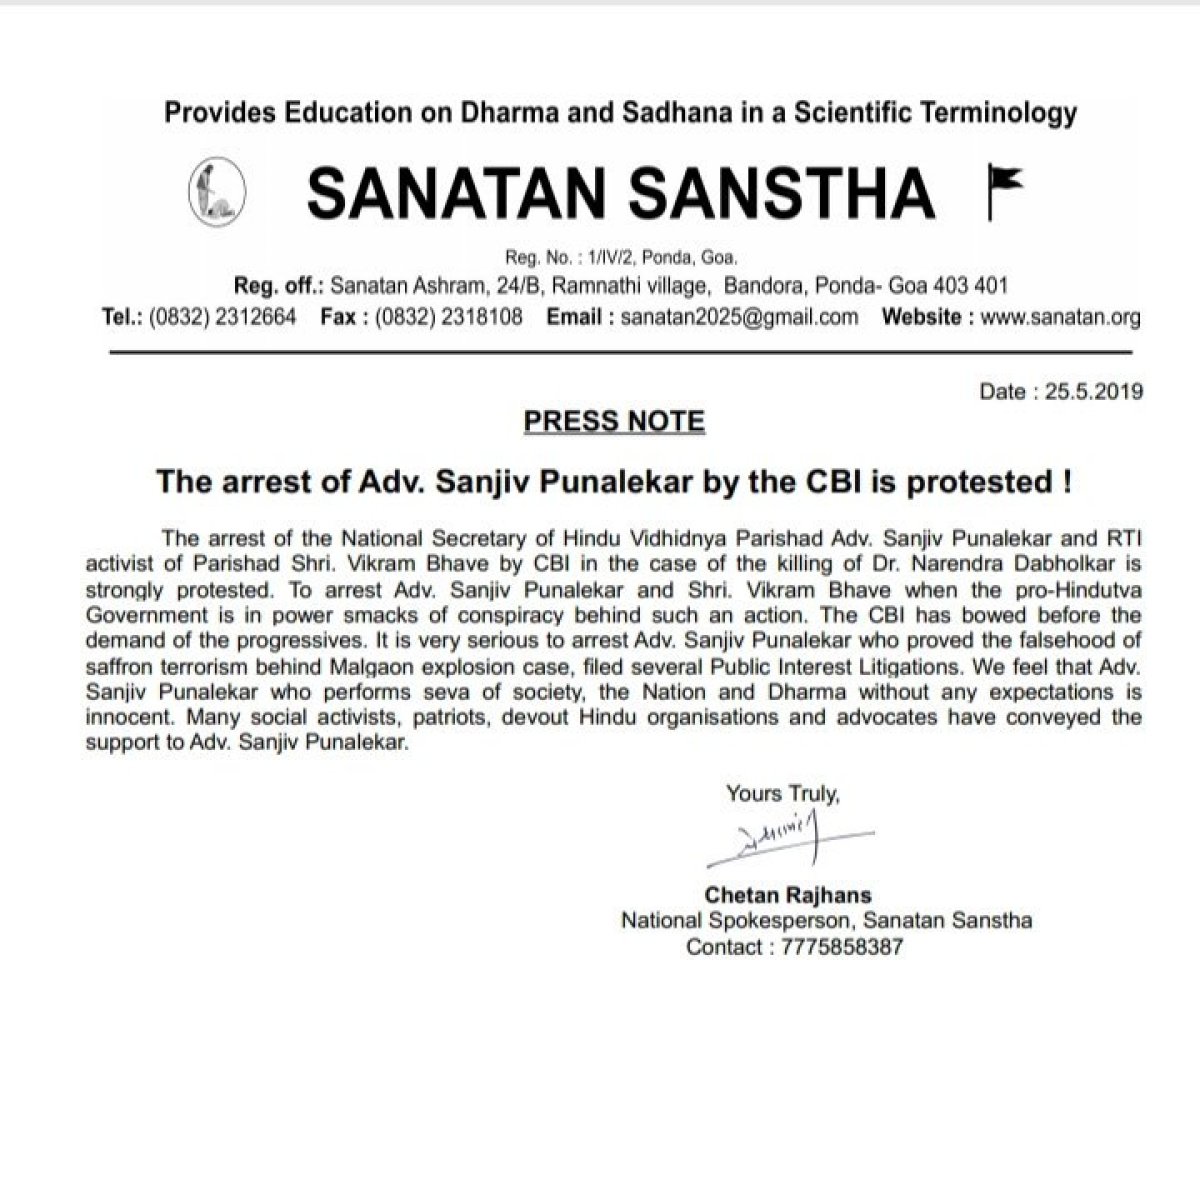 Press note released by the Sanatan Sanstha following the arrest of Advocate Sanjiv Punalekar and Vikram Bhave